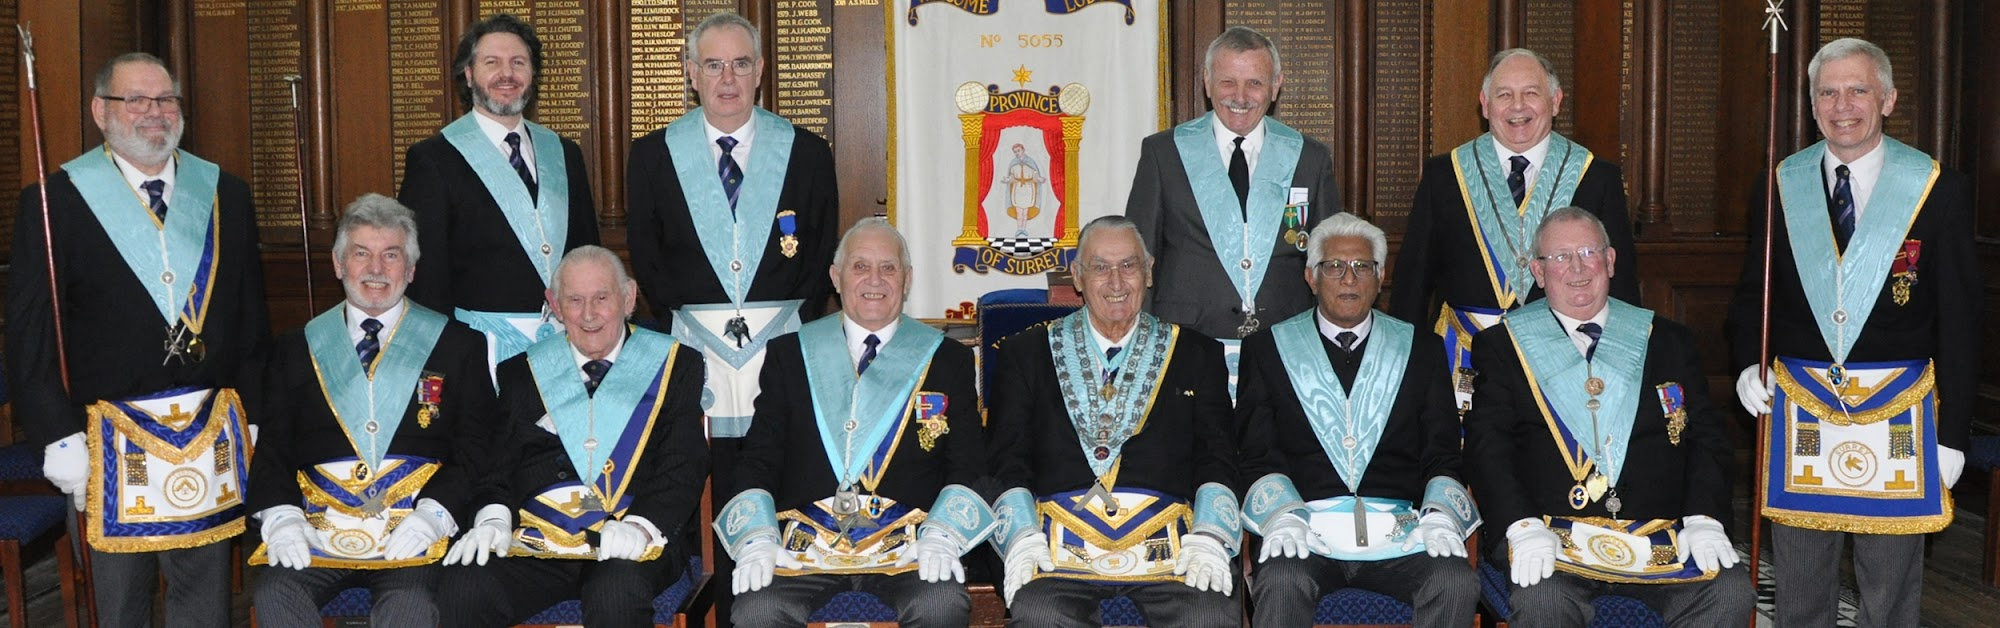 Welcome Lodge Officers 2018